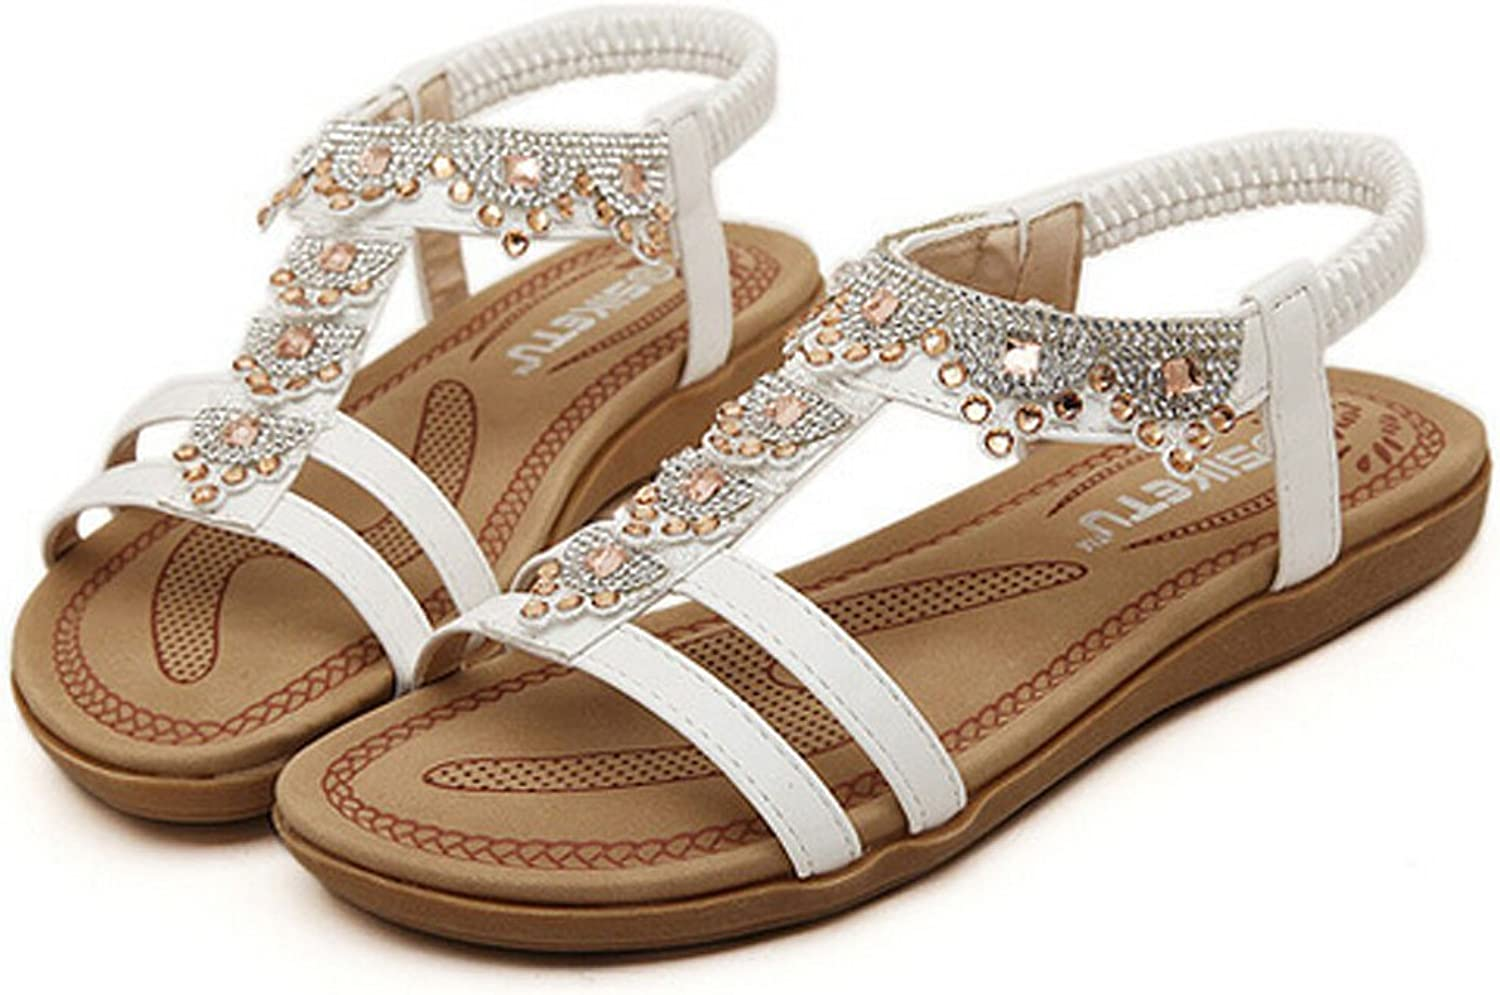 San hojas Beach shoes for Girls Students Flat